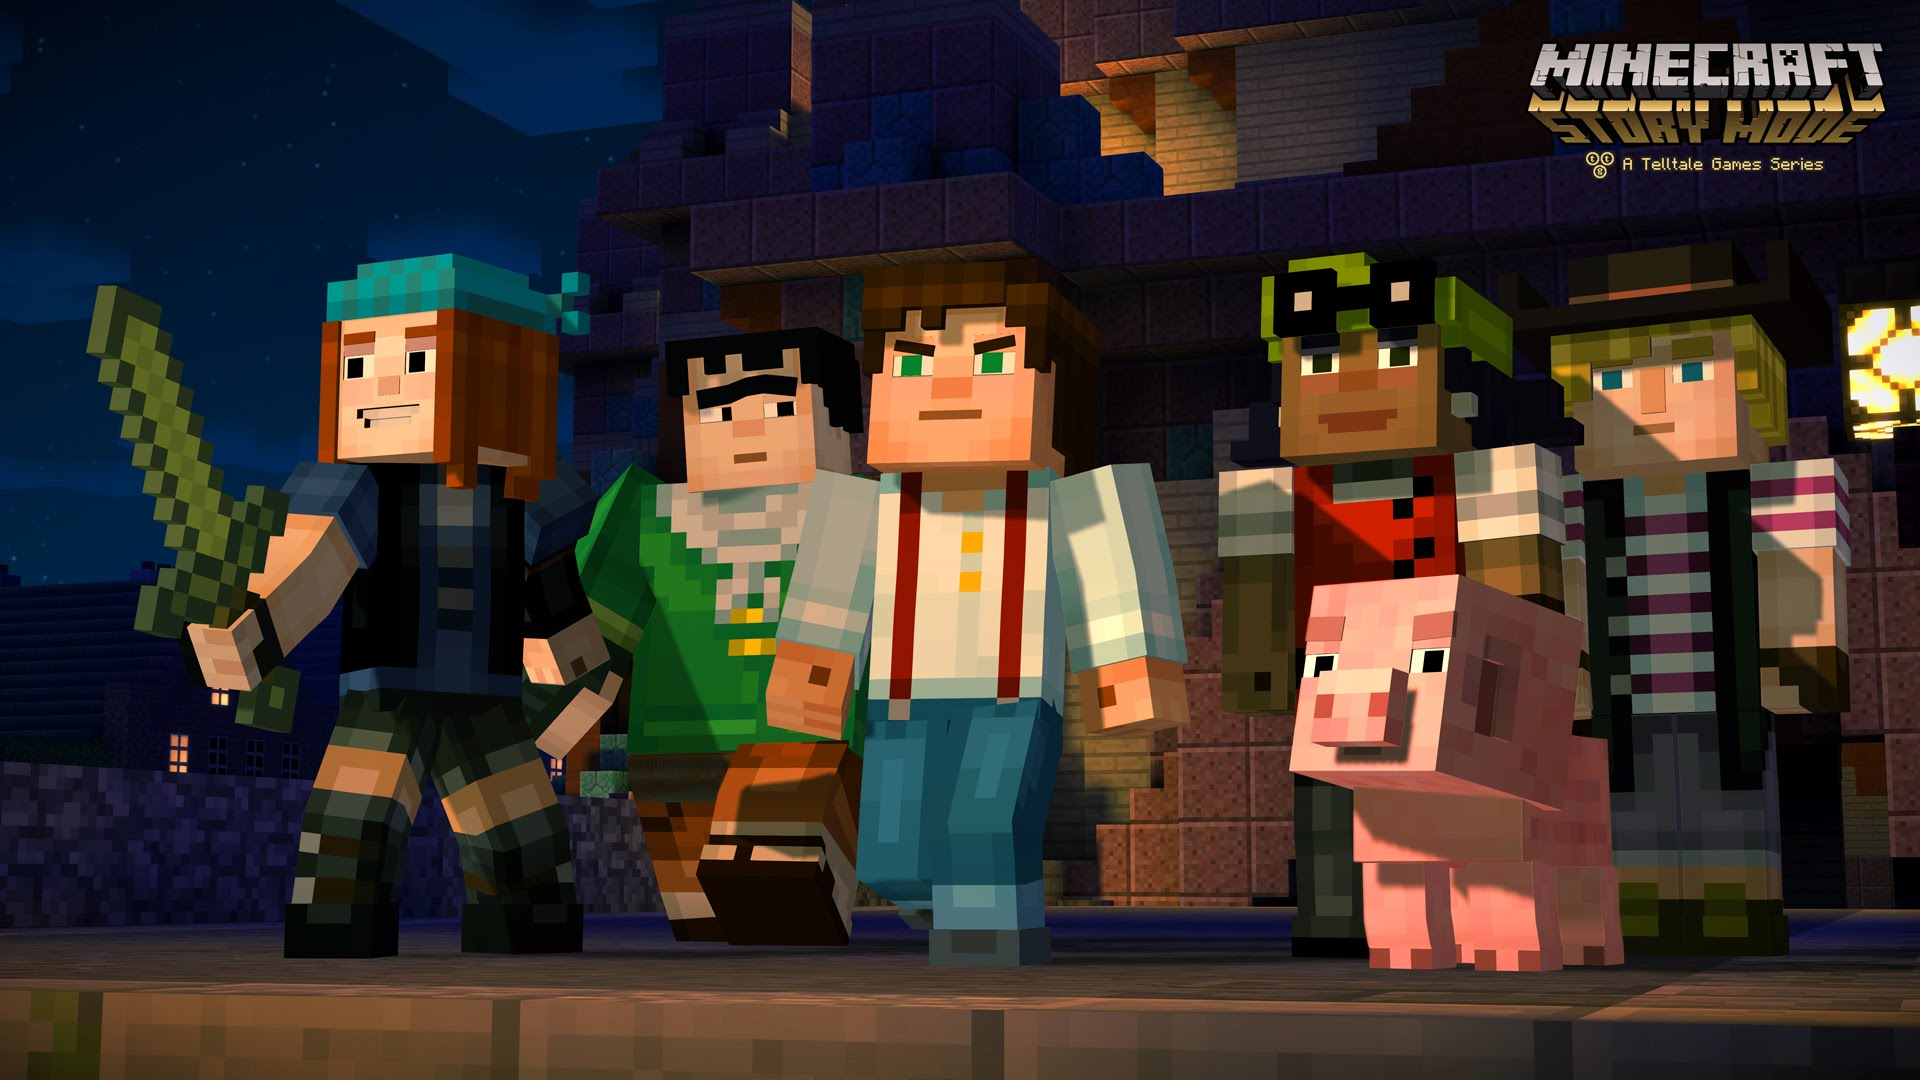 Minecraft Story Mode Archives Nintendo Everything Three Way Switch In Posted On 2 Weeks Ago By Brianne Brian News Wii U 3 Comments 0 Likes